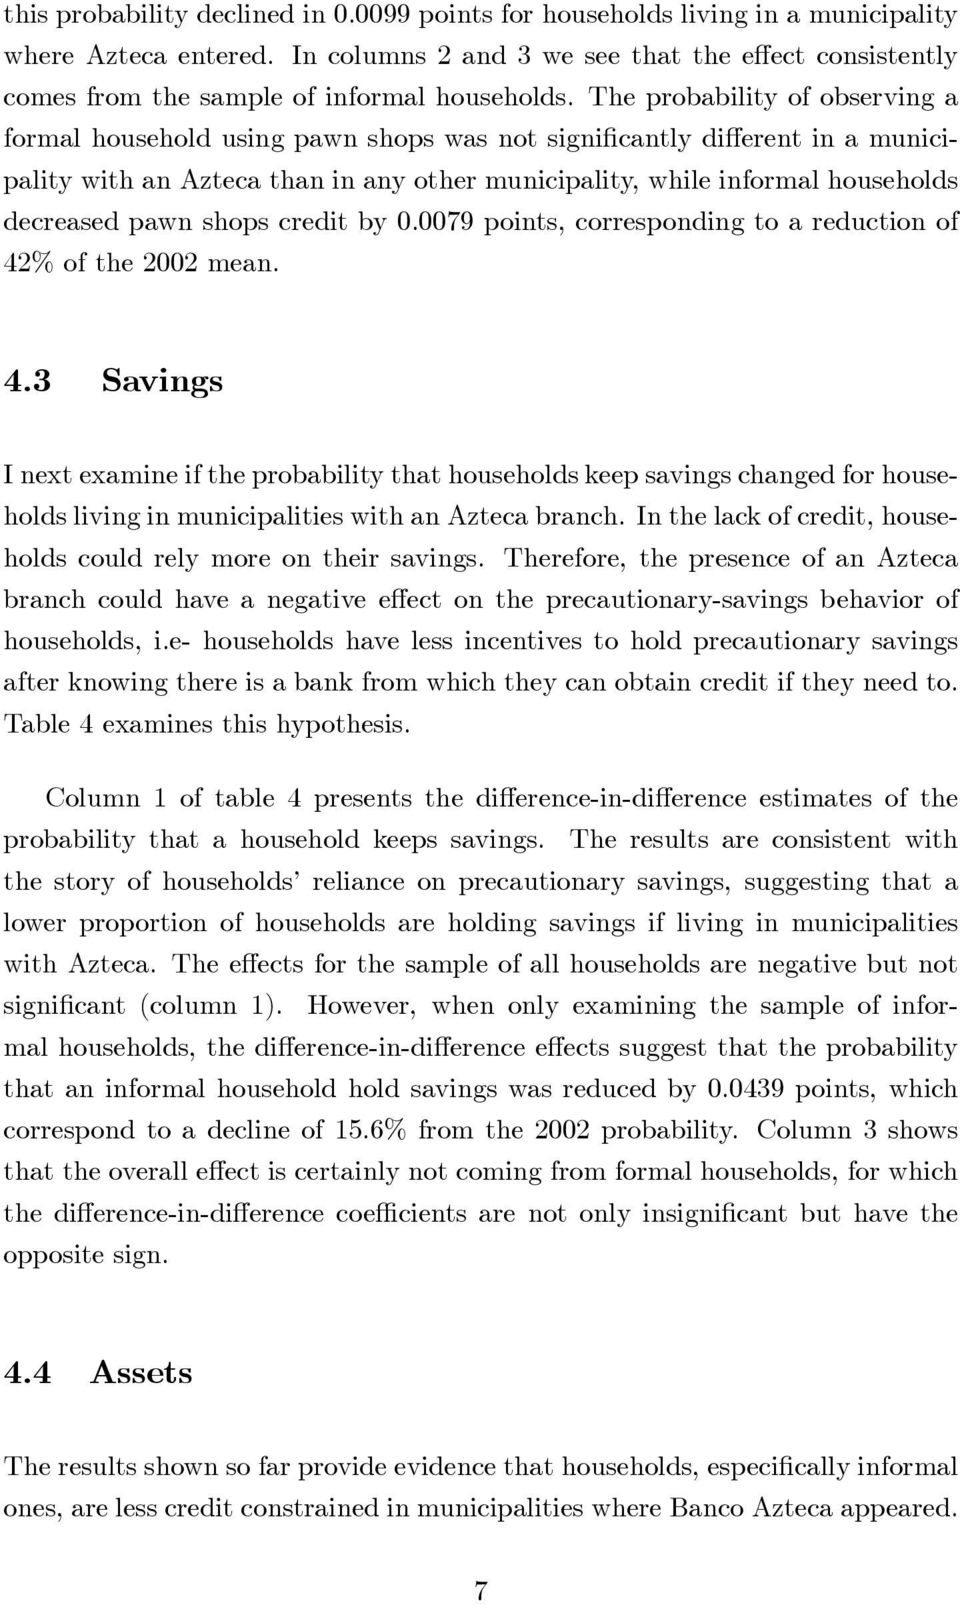 The probability of observing a formal household using pawn shops was not signi cantly di erent in a municipality with an Azteca than in any other municipality, while informal households decreased